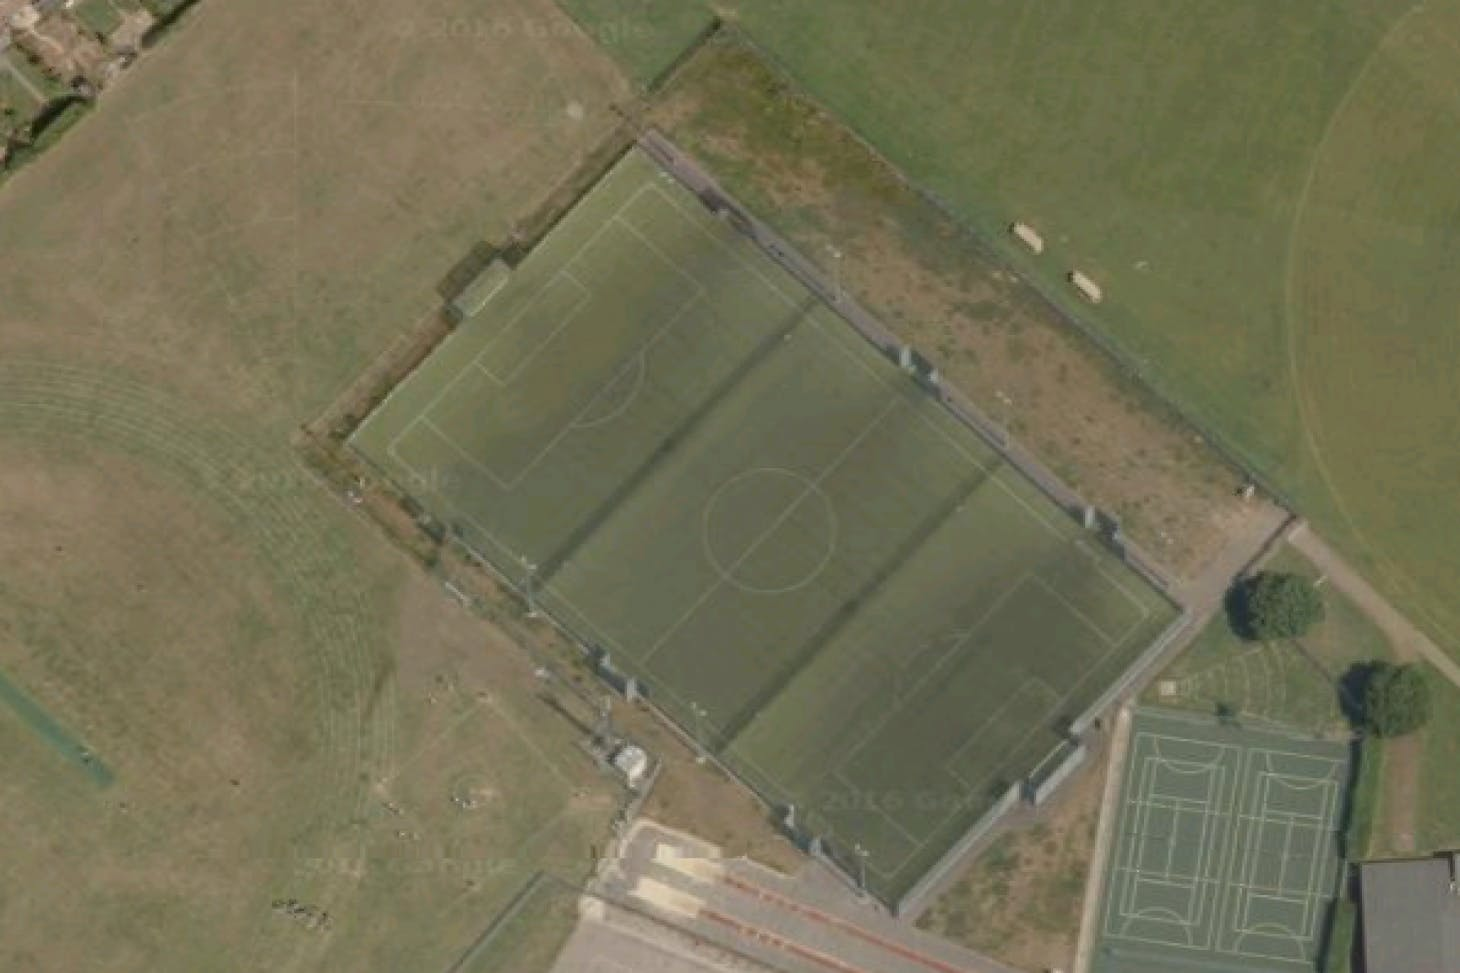 Ashcroft High School 11 a side | 3G Astroturf football pitch